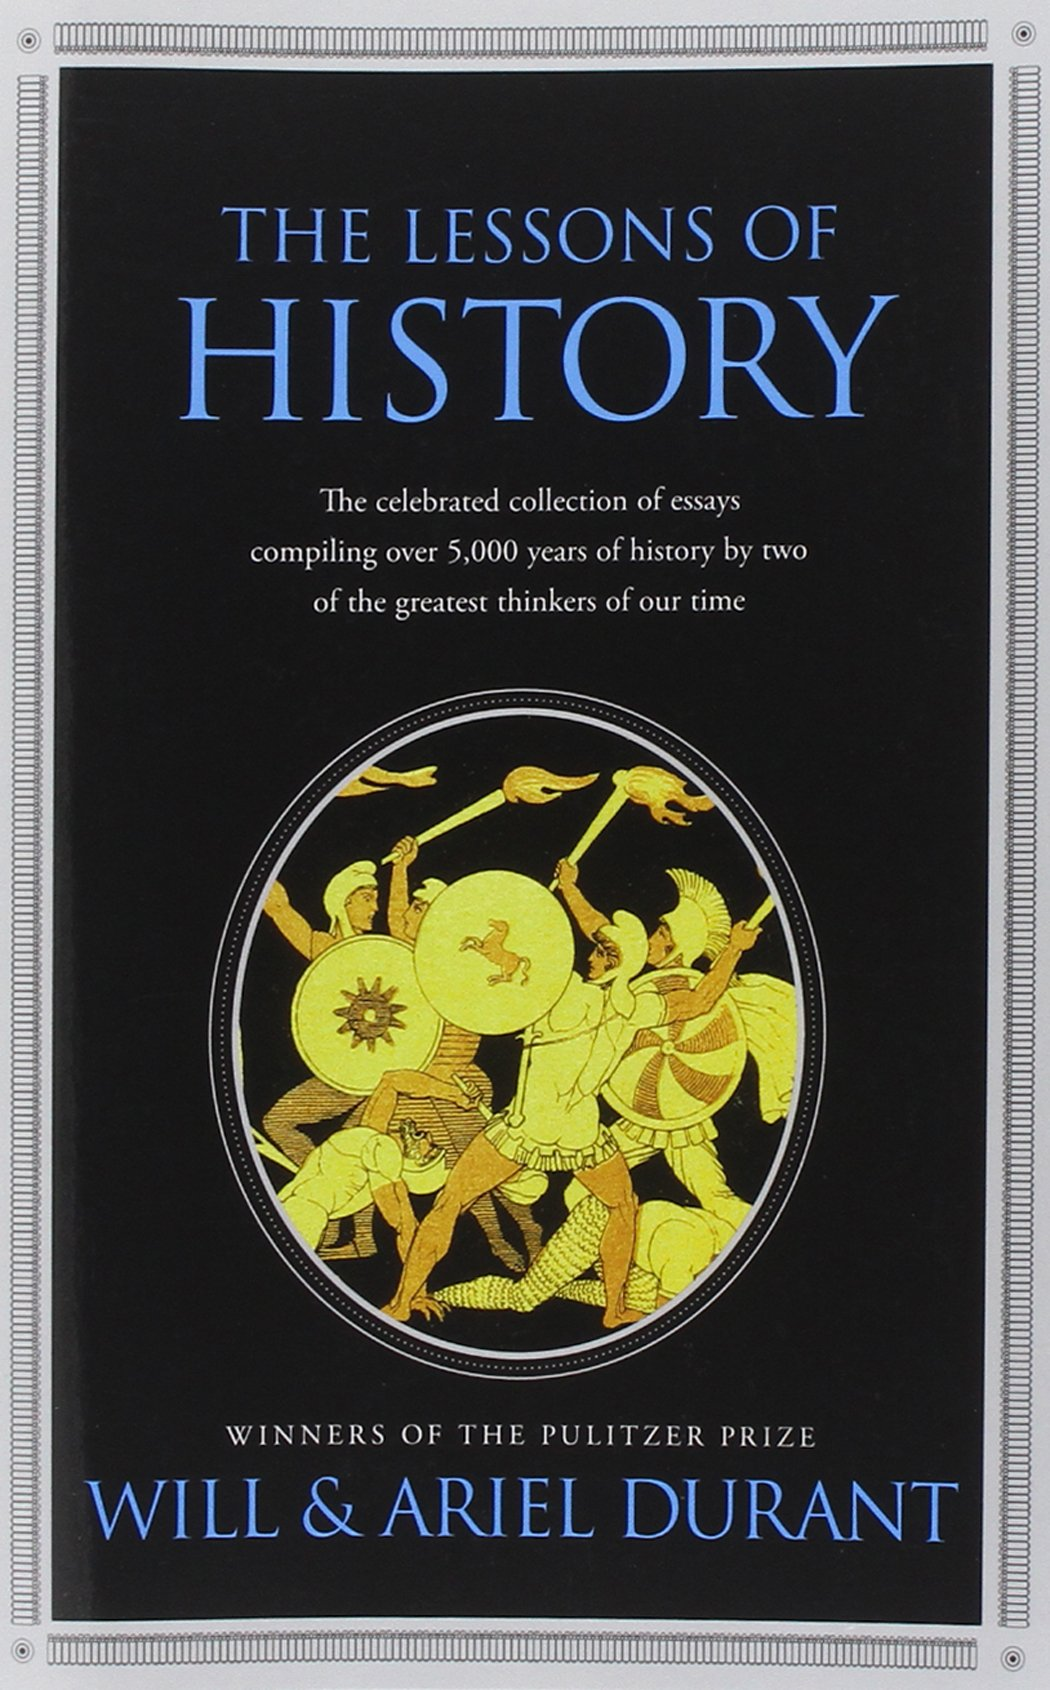 the lessons of history will durant ariel durant 9781439149959 the lessons of history will durant ariel durant 9781439149959 com books